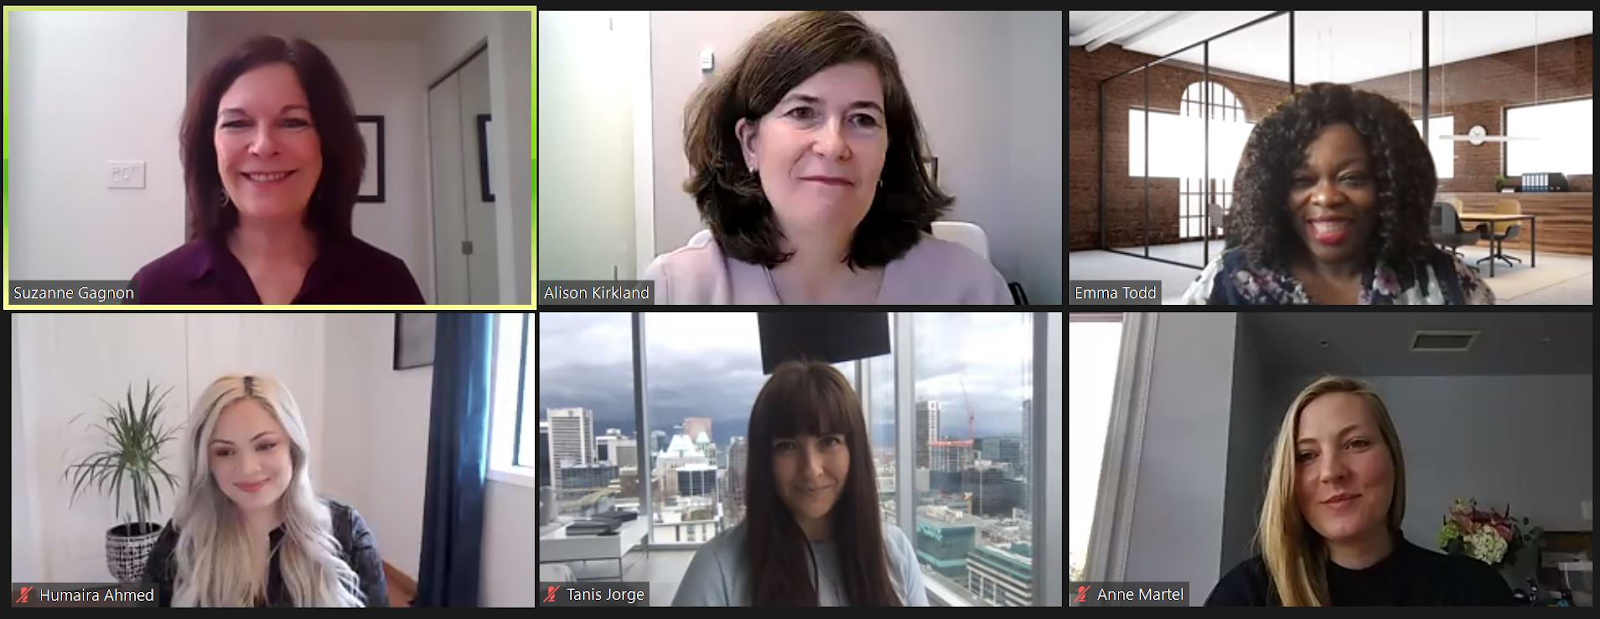 A screenshot taken during the panel discussion featuring Suzanne Gagnon, Alison Kirkland, Emma Todd, Humaira Ahmed, Tanis Jorge, and Anne Martel